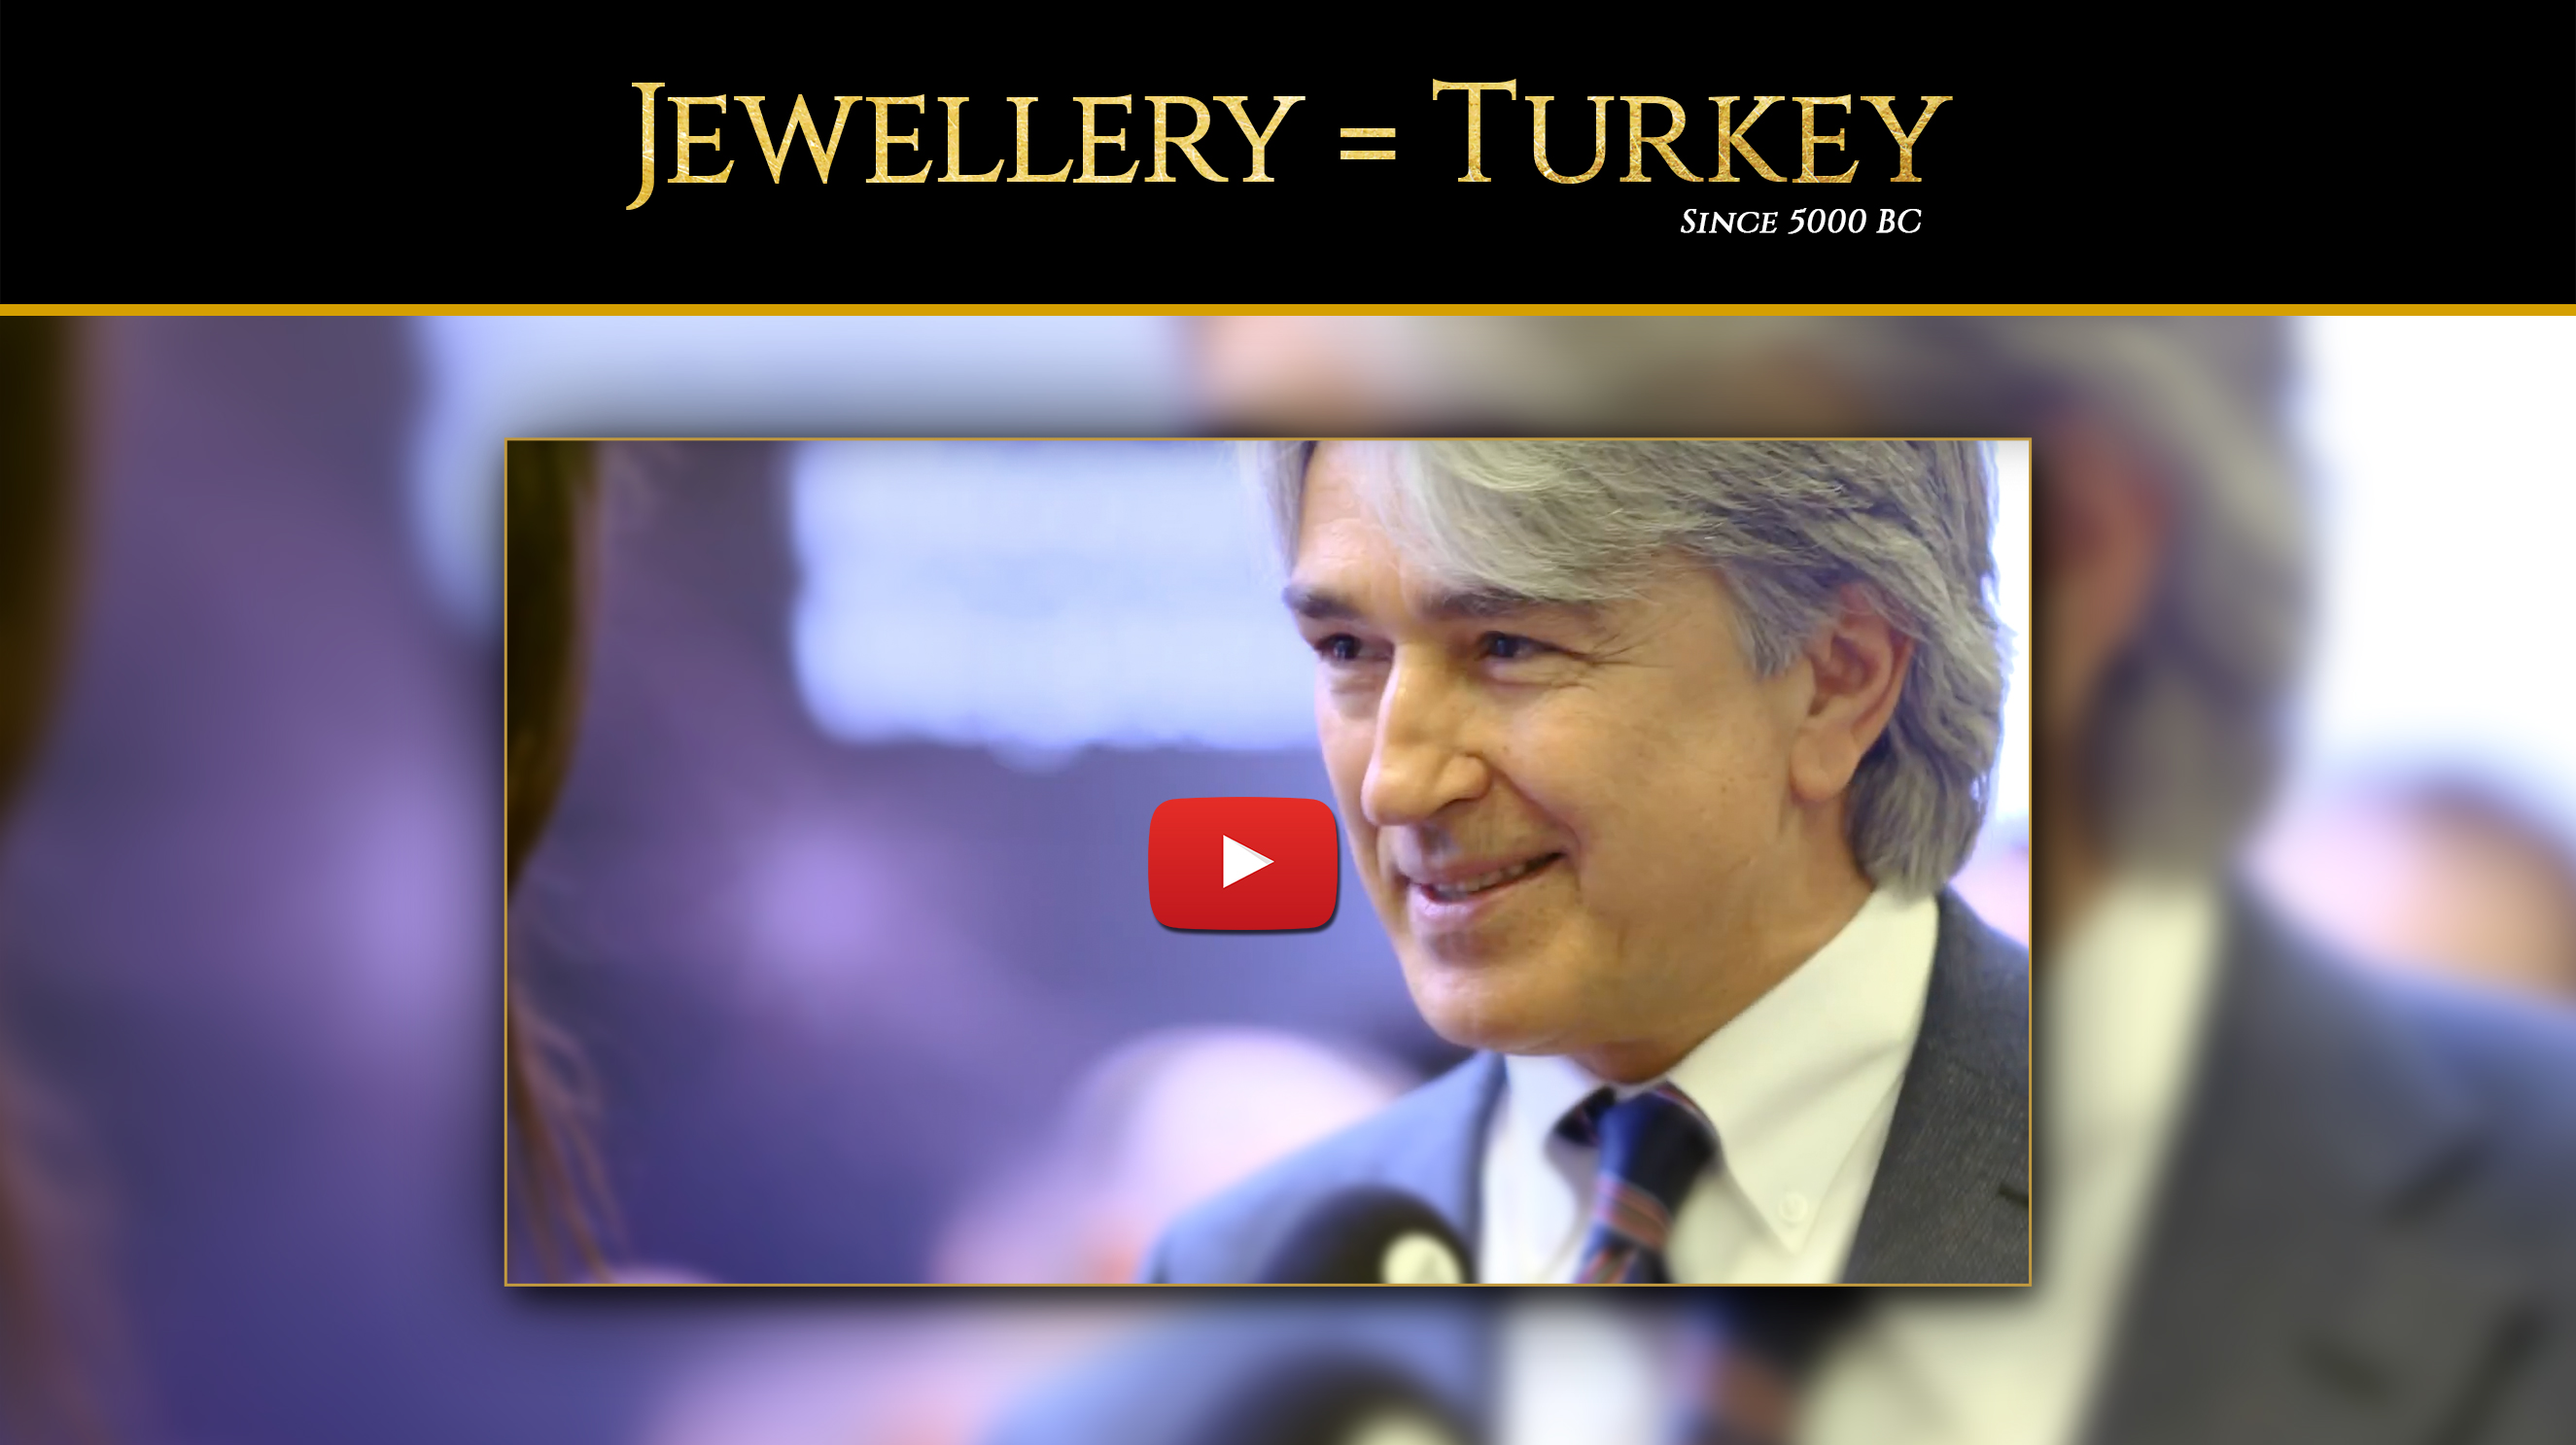 Welcome to 45. Istanbul Jewelry Show